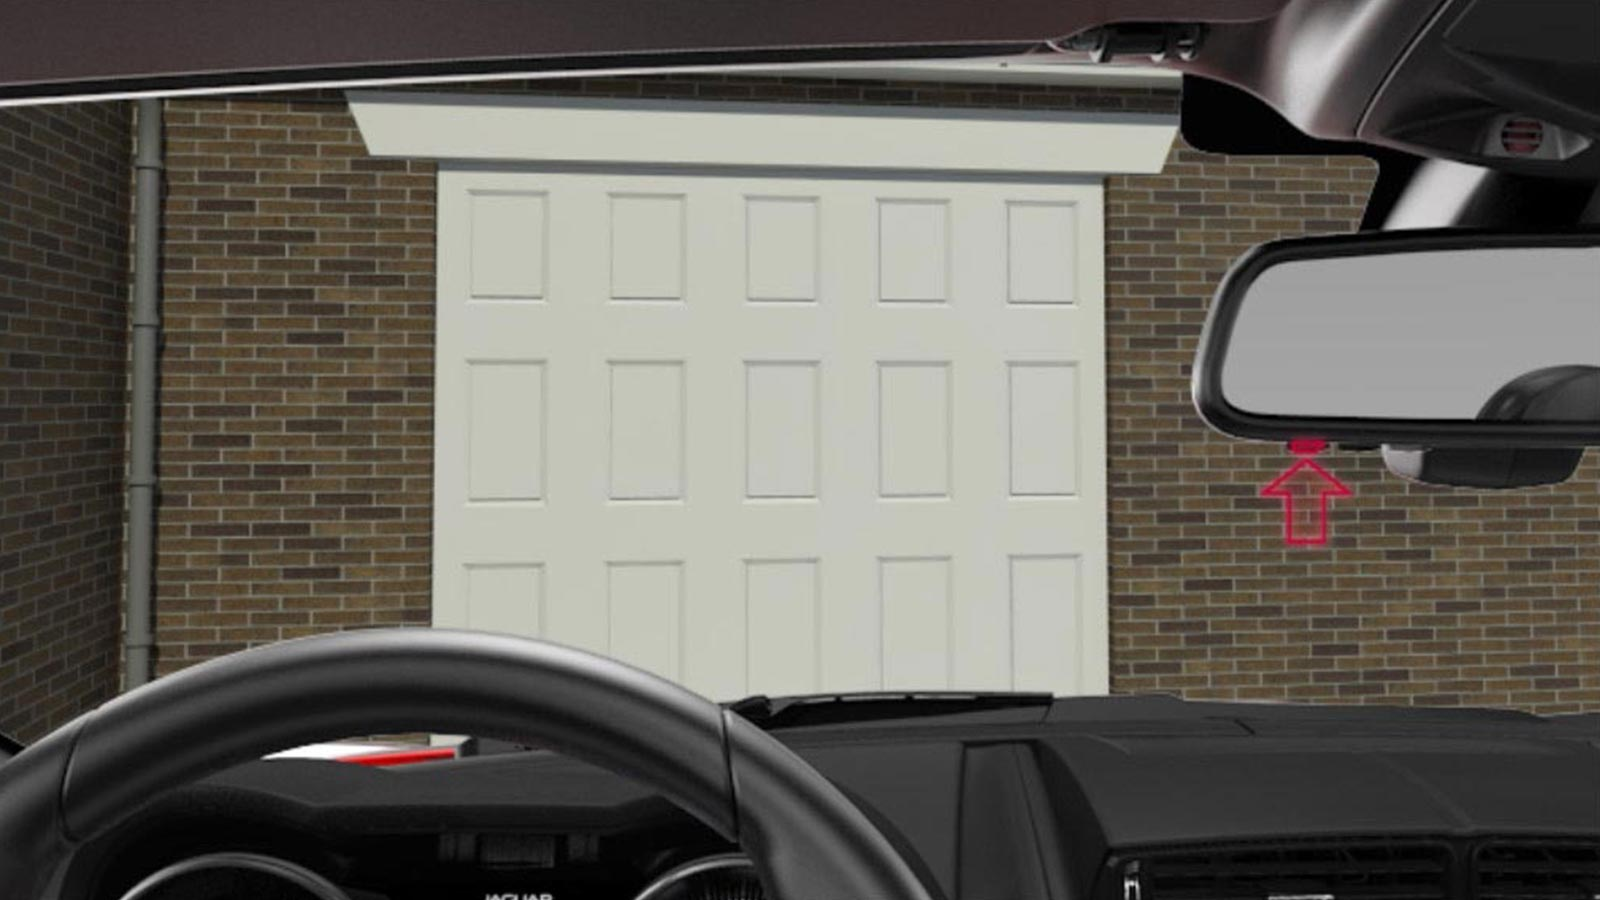 A White Garage Door Being Opened Wirelessly